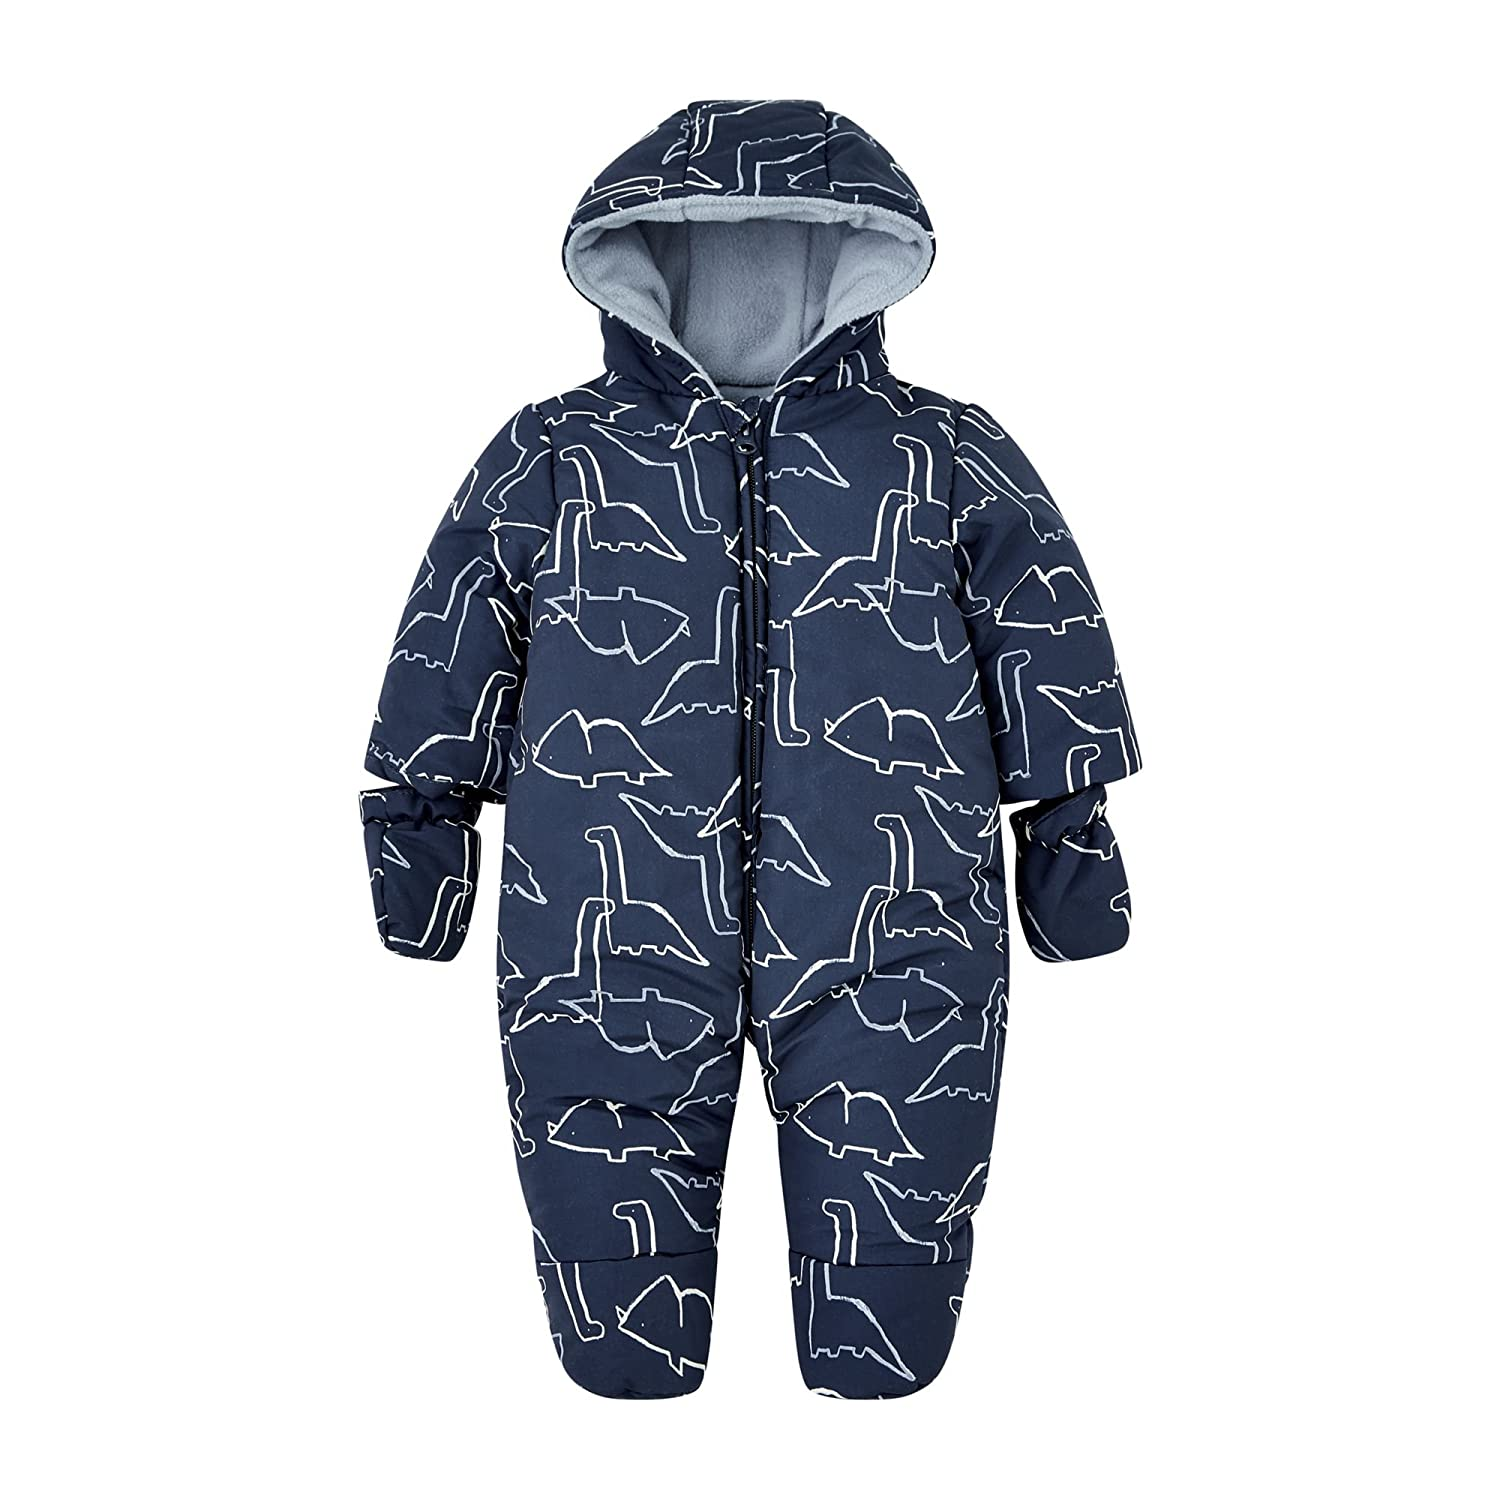 Mothercare Boys Snowsuit Fleece, Tuta da Neve Bimbo QD721